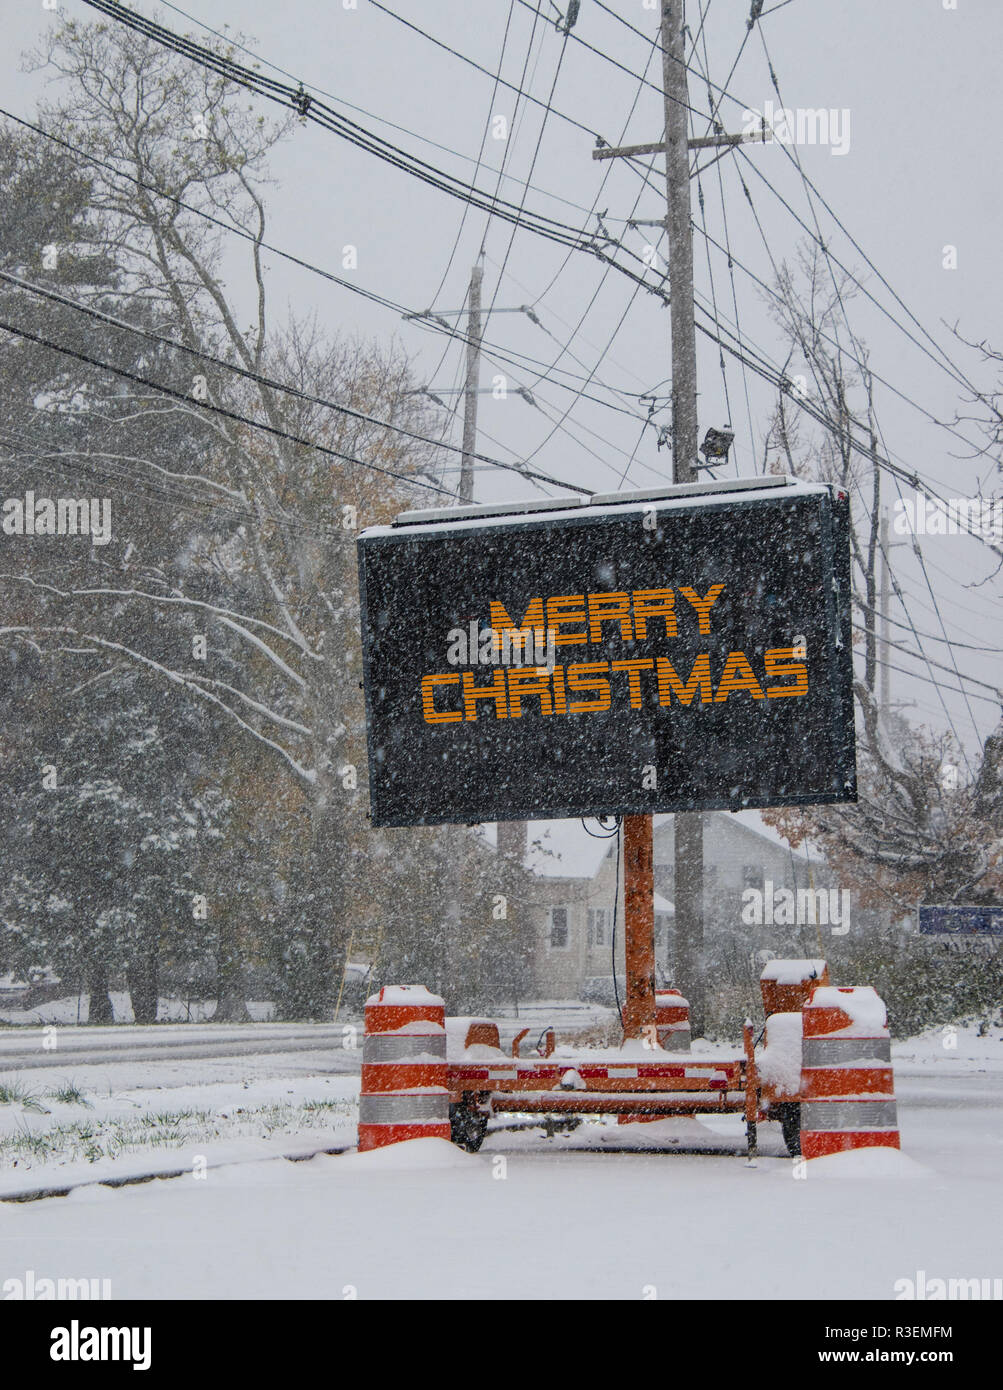 Electric road traffic mobile sign by the side of a snow covered road with snow falling that says, Merry Christmas - Stock Image